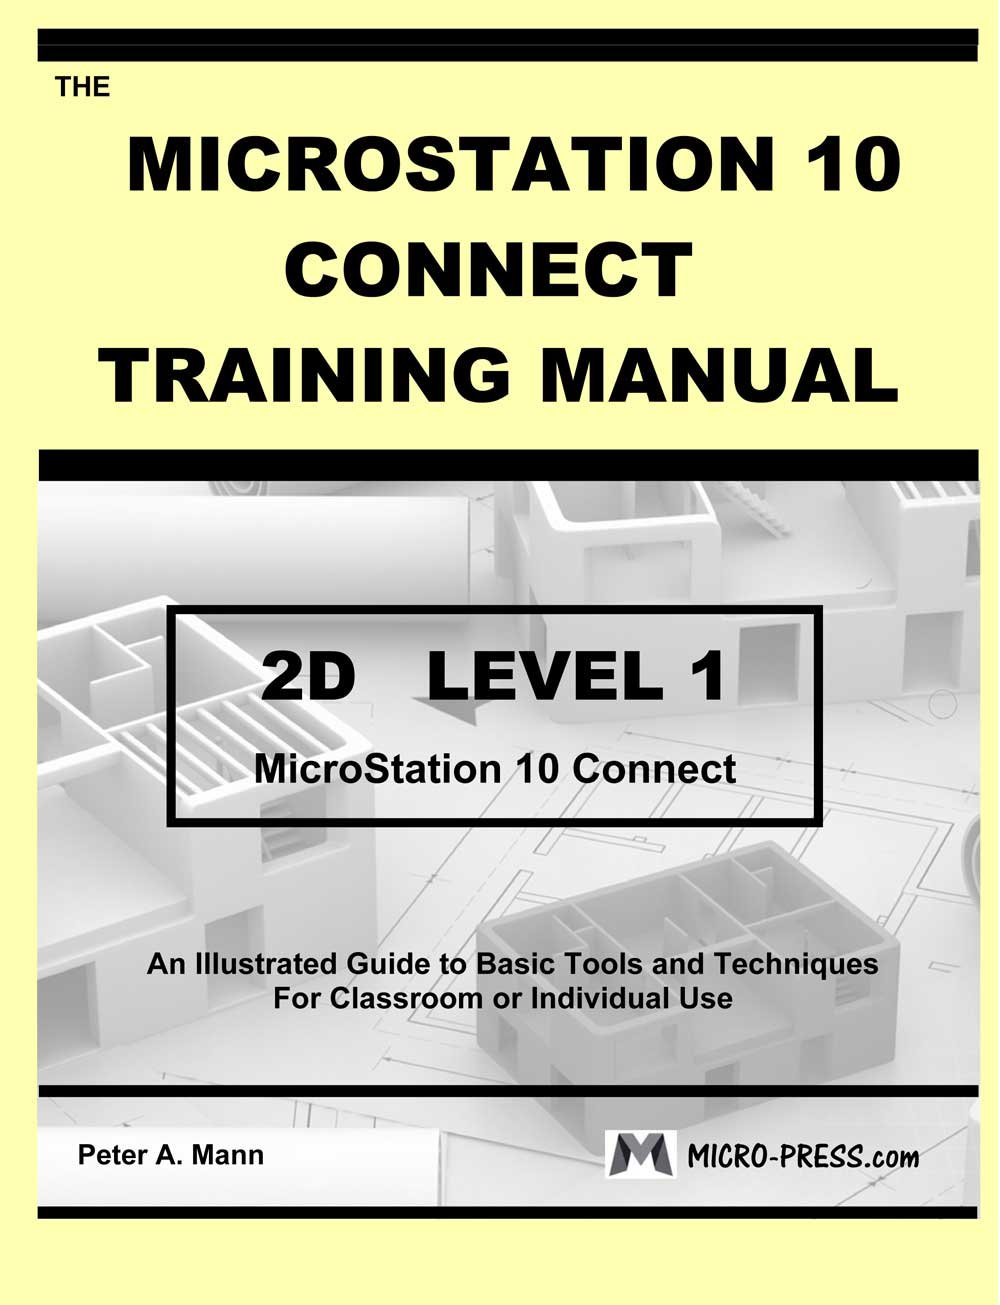 MicroStation 10 Connect Training Manual 2D Level 1: Peter A